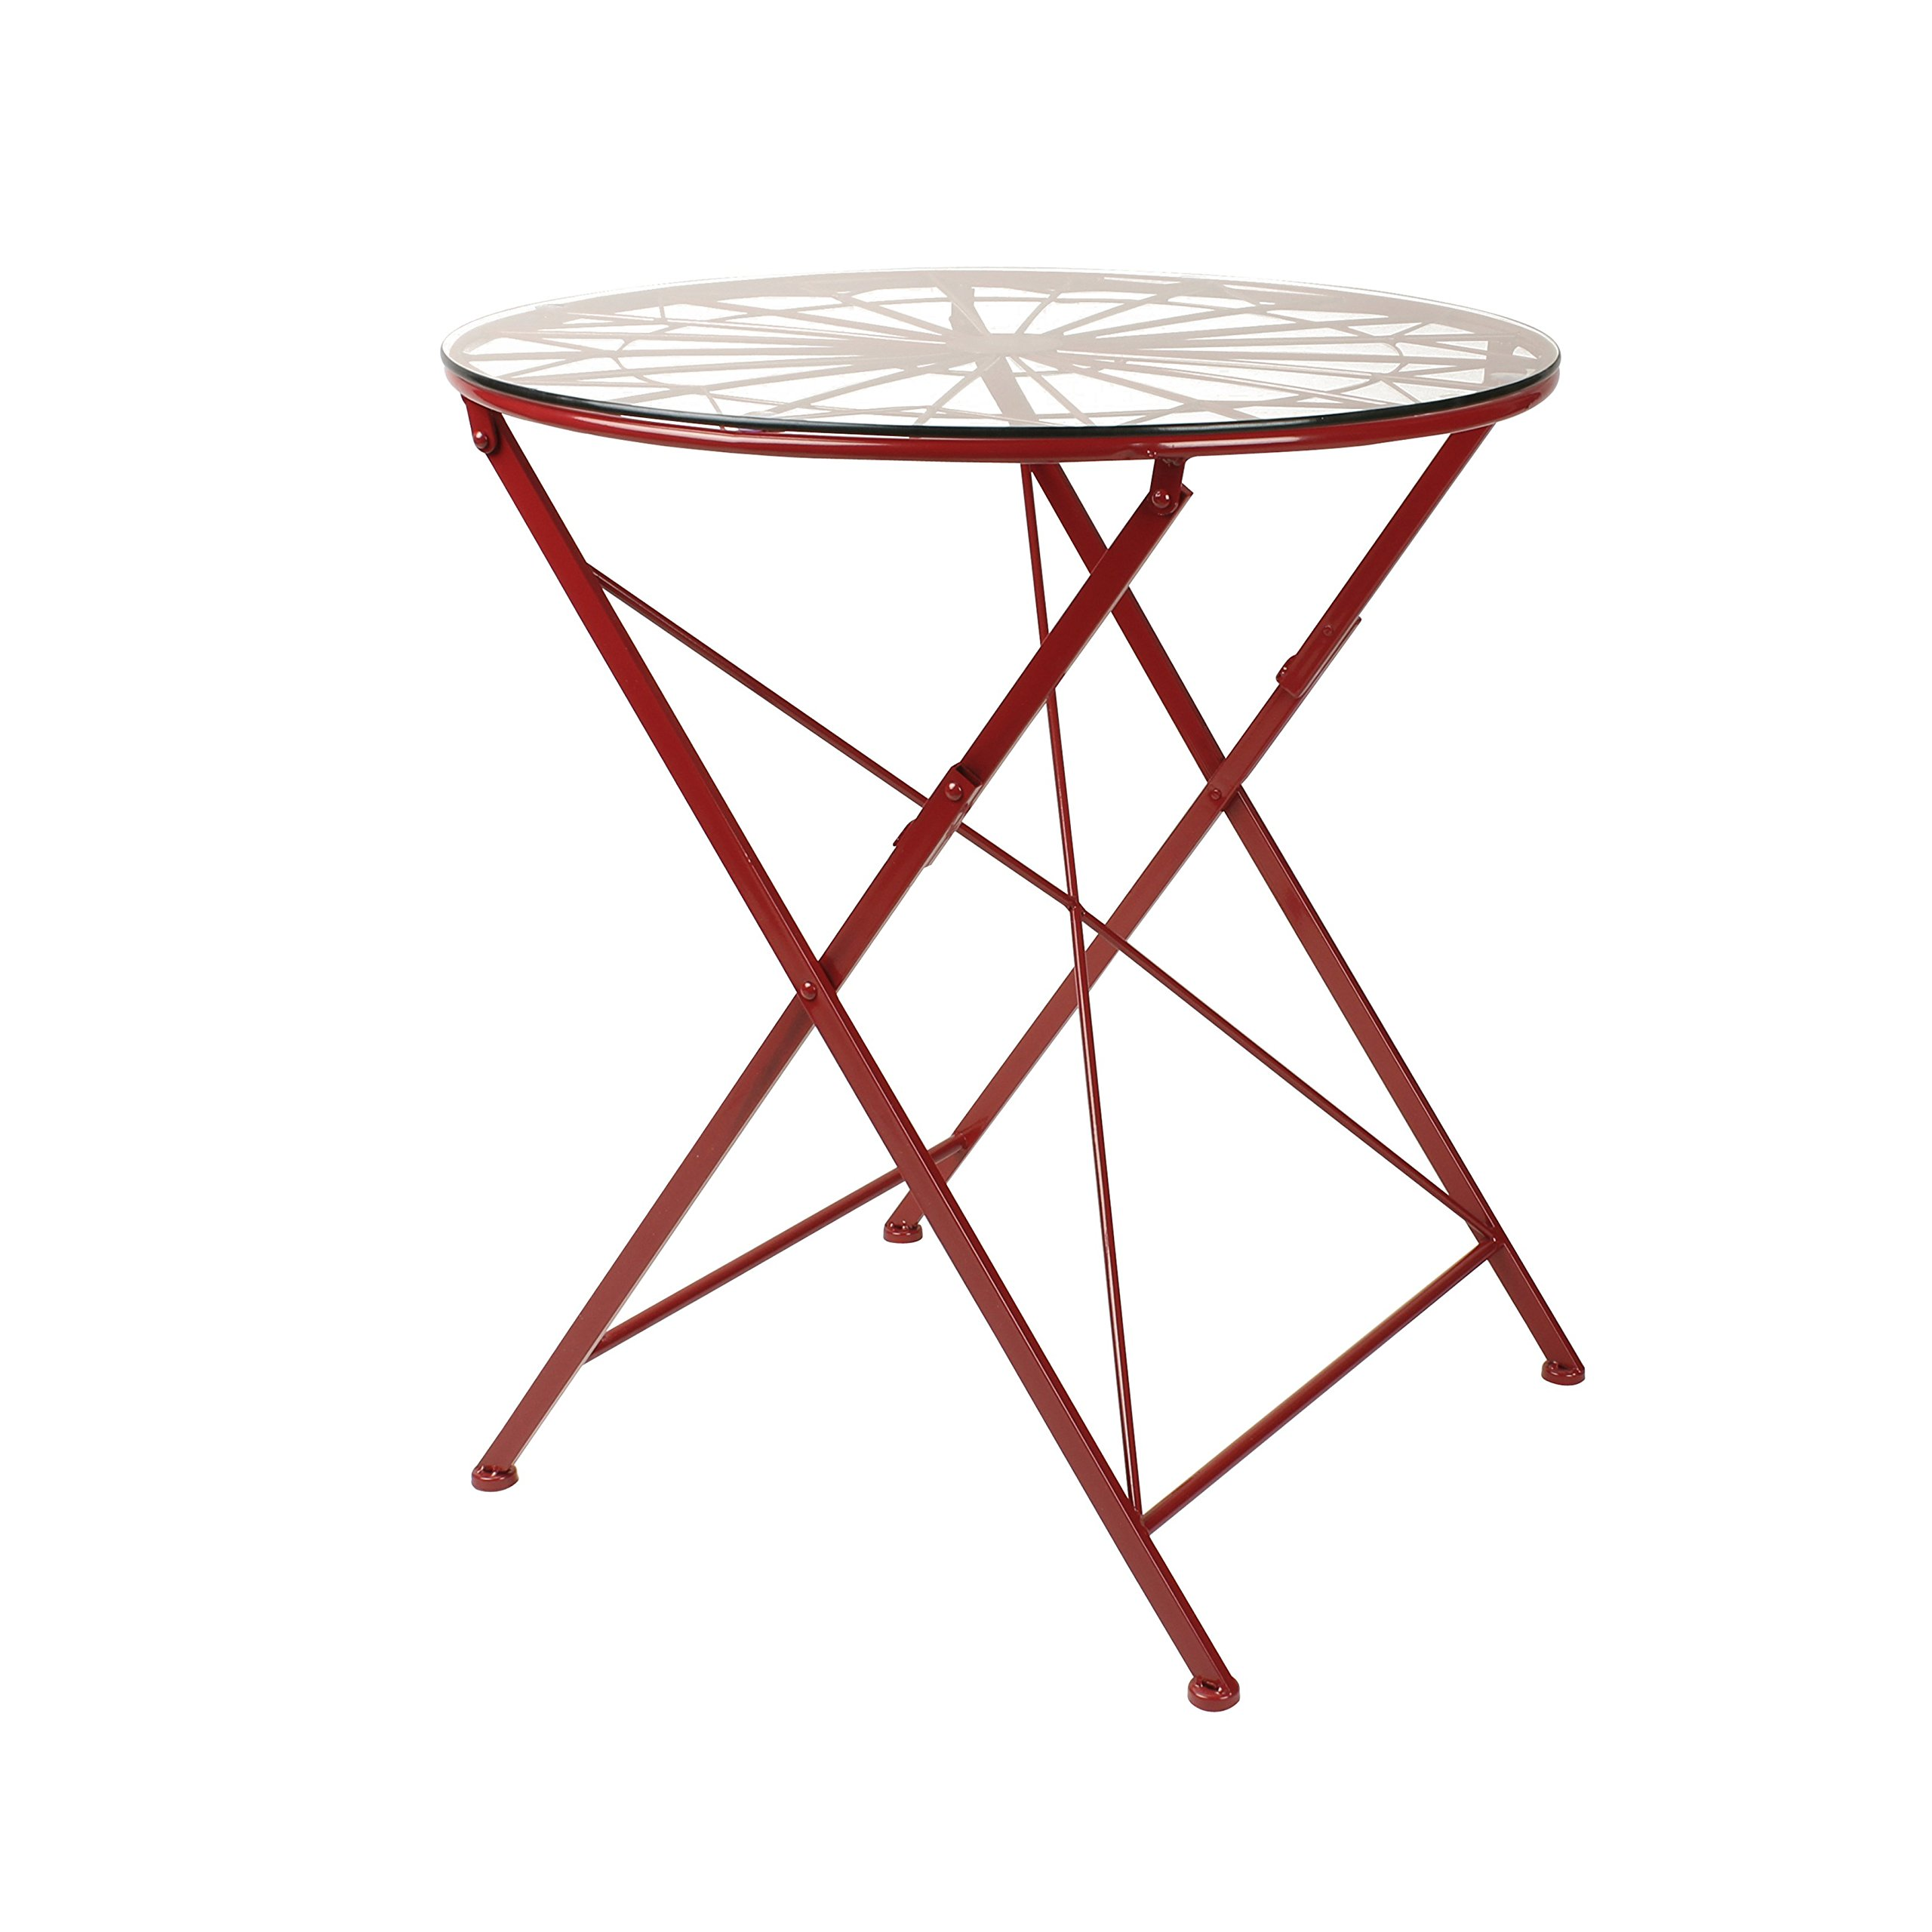 Kate and Laurel 209804 Thrapston Metal and Glass Folding Round Dining Table, Red